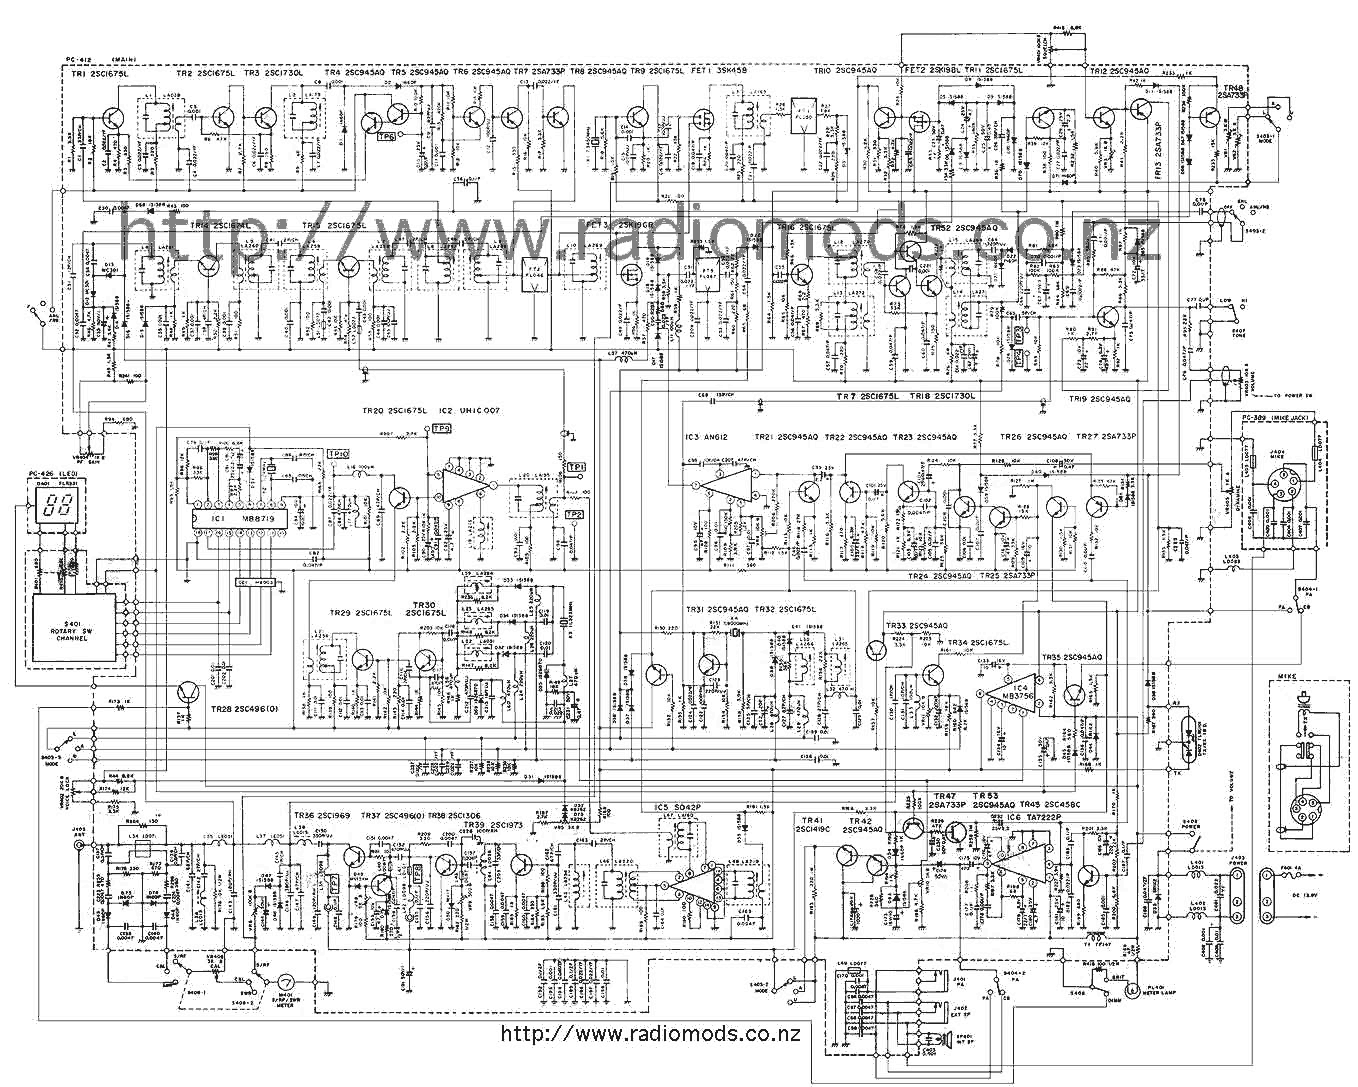 The Defpom CB And HAM Circuit Diagram Page on